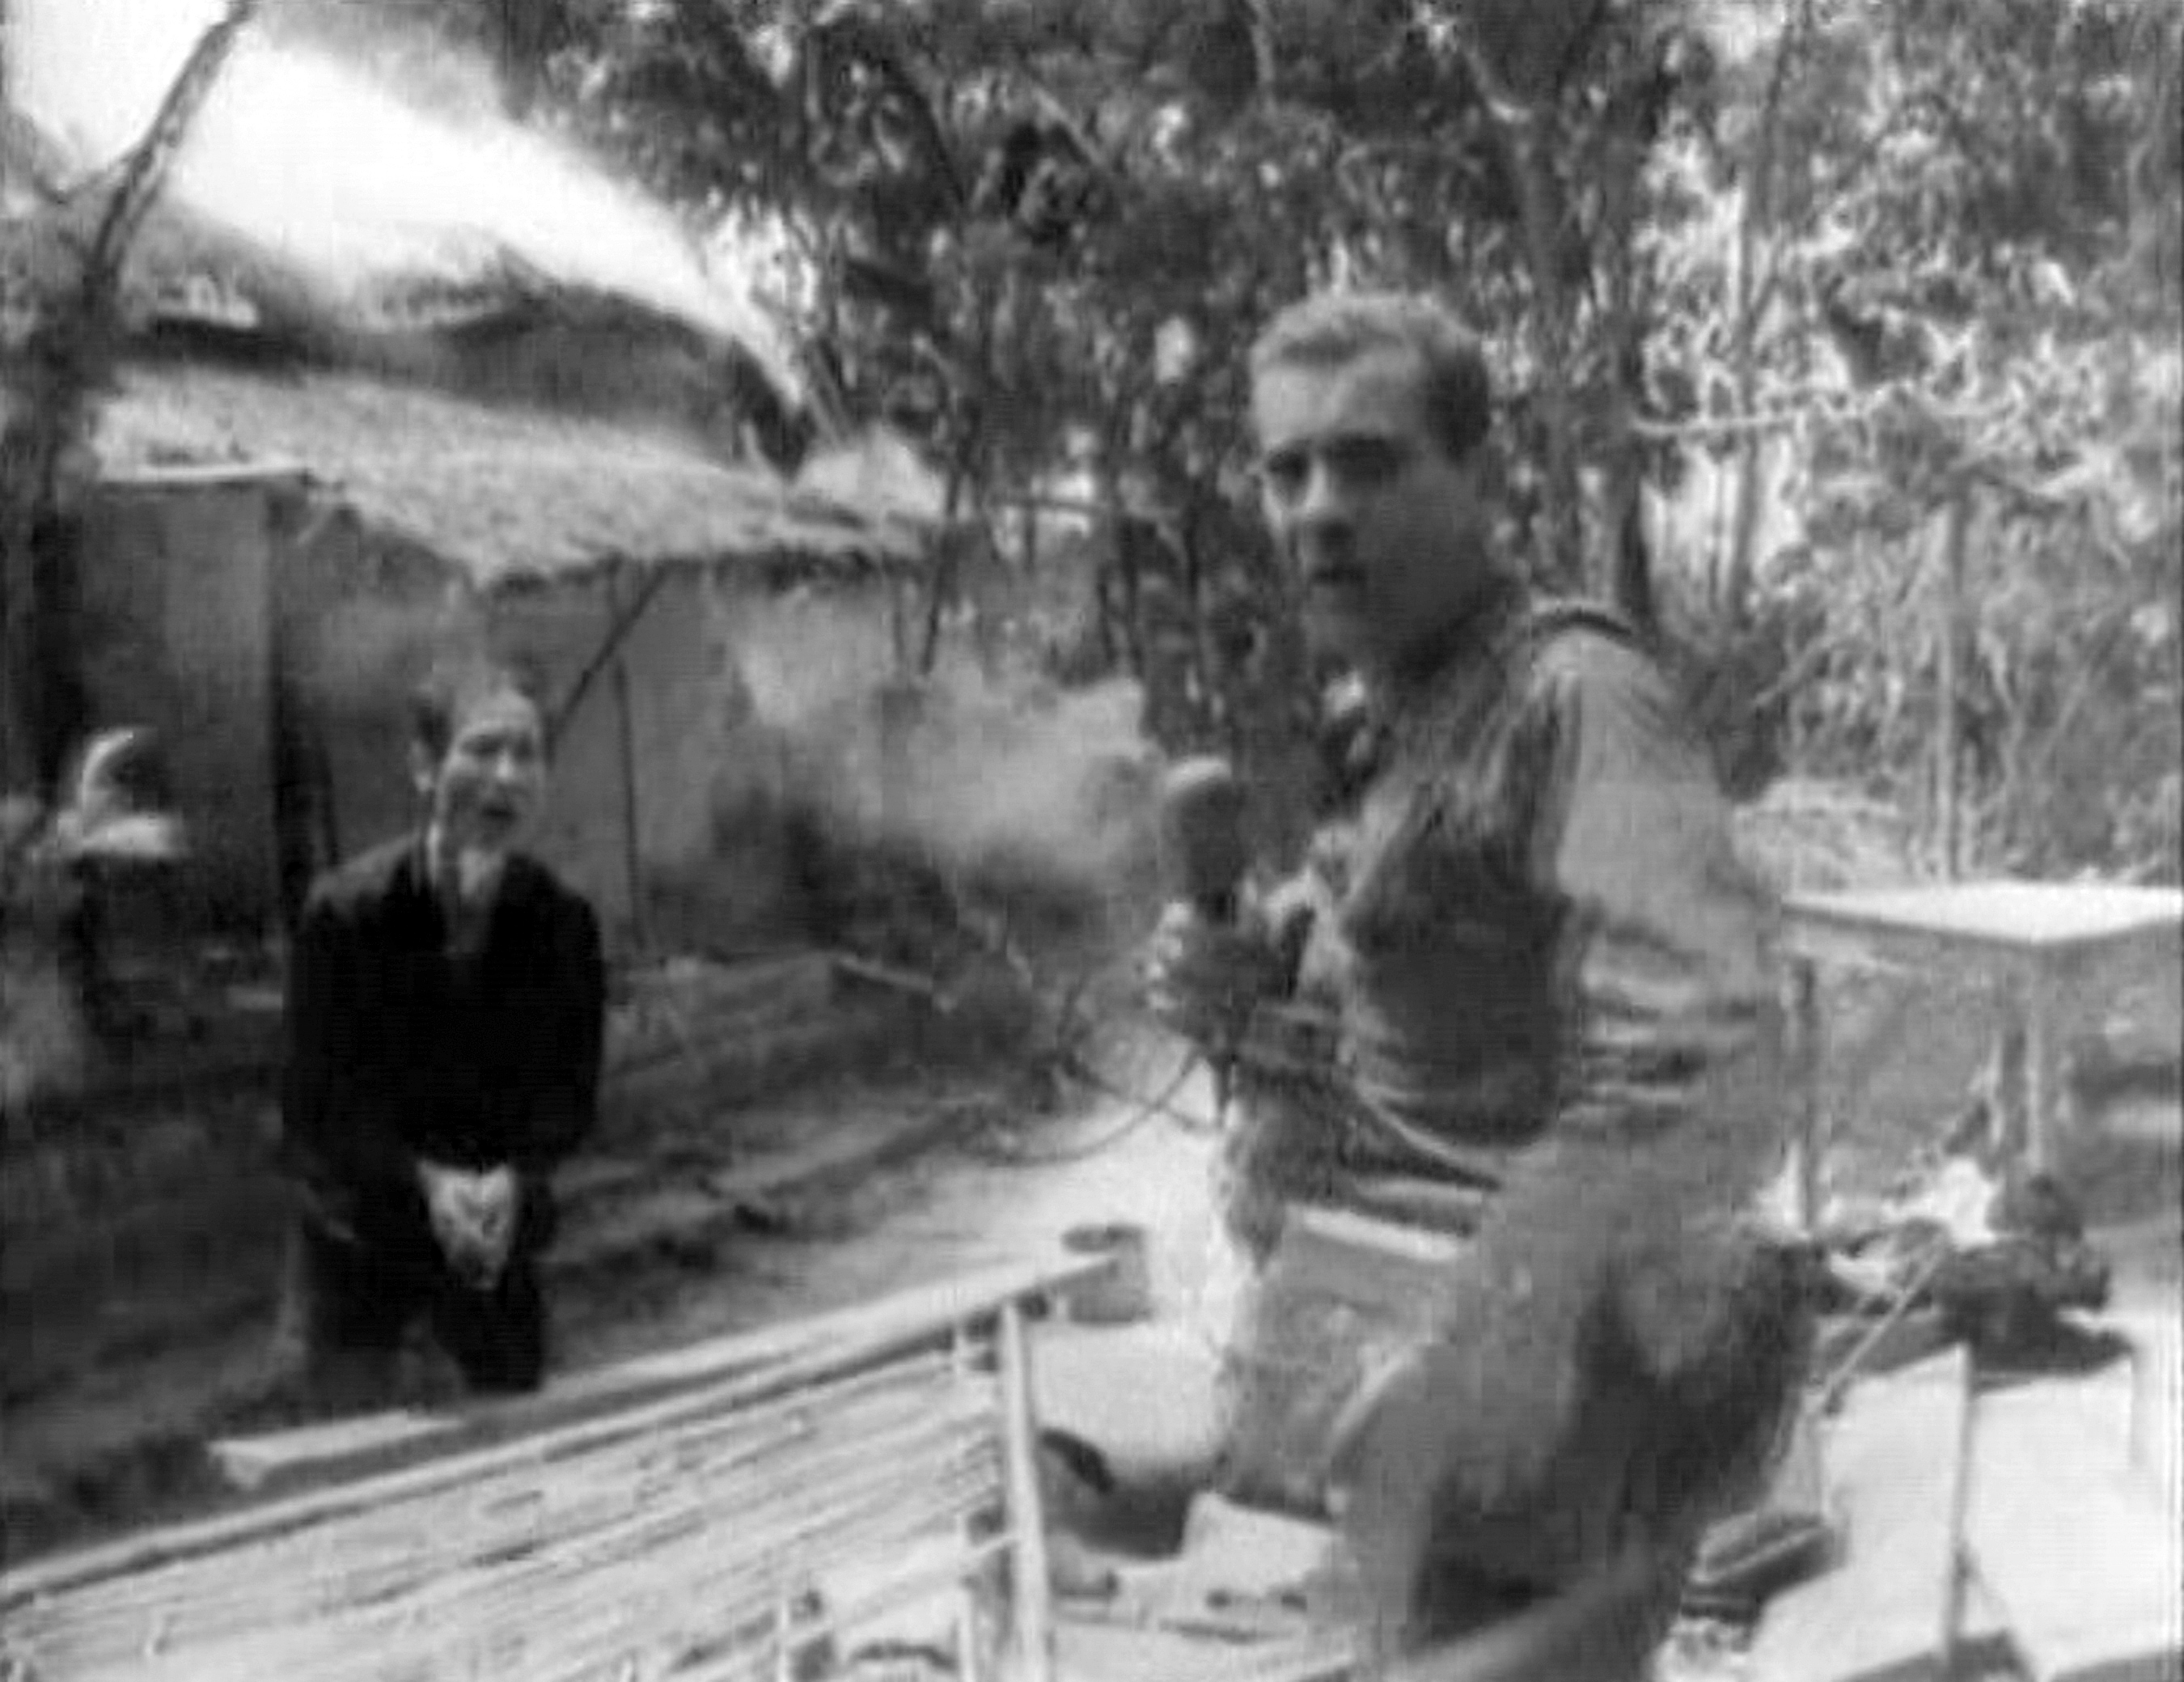 Morley Safer, correspondent for CBS News, reporting on the systematic burning of South Vietnamese villages by US Marines in Cam Ne, Vietnam, 1965.